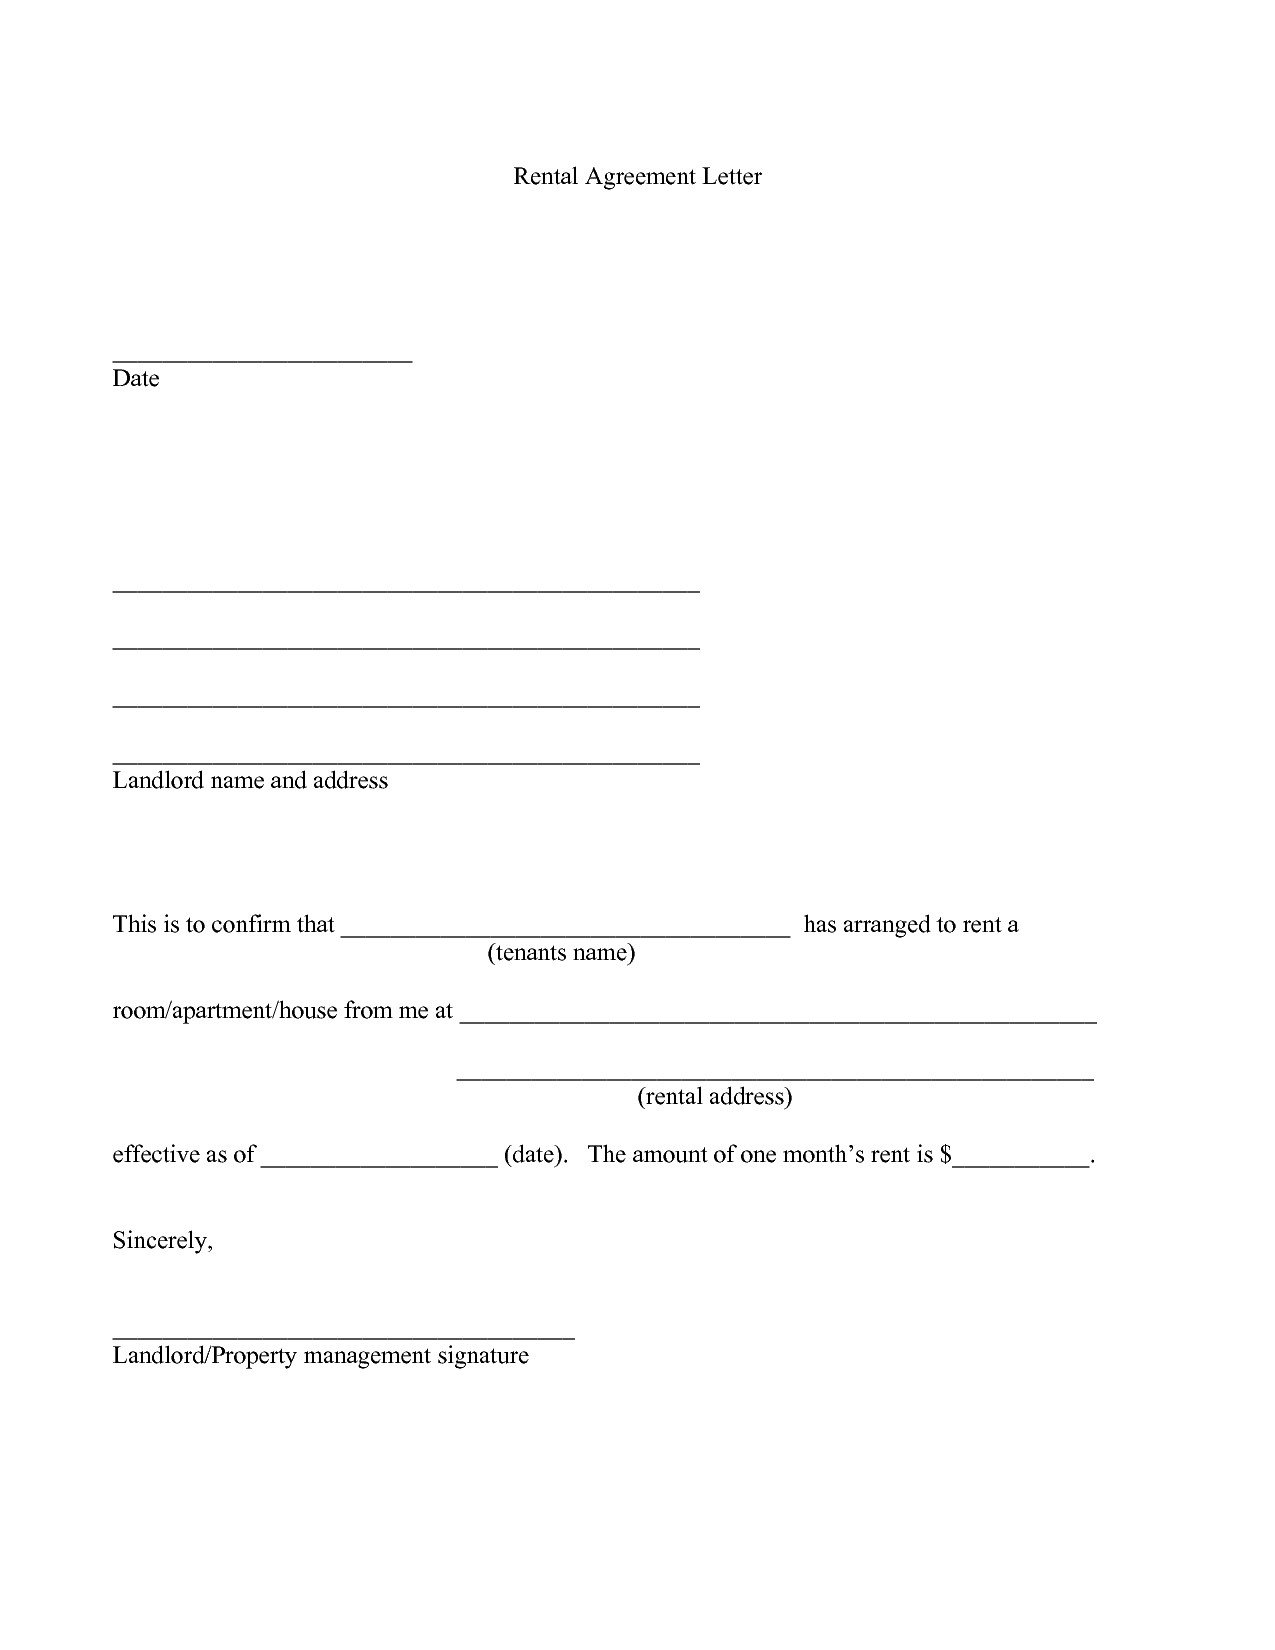 Landlord Agreement Letter Template - Landlord Tenant Contract Awesome Cosigner Rental Agreement Agreement